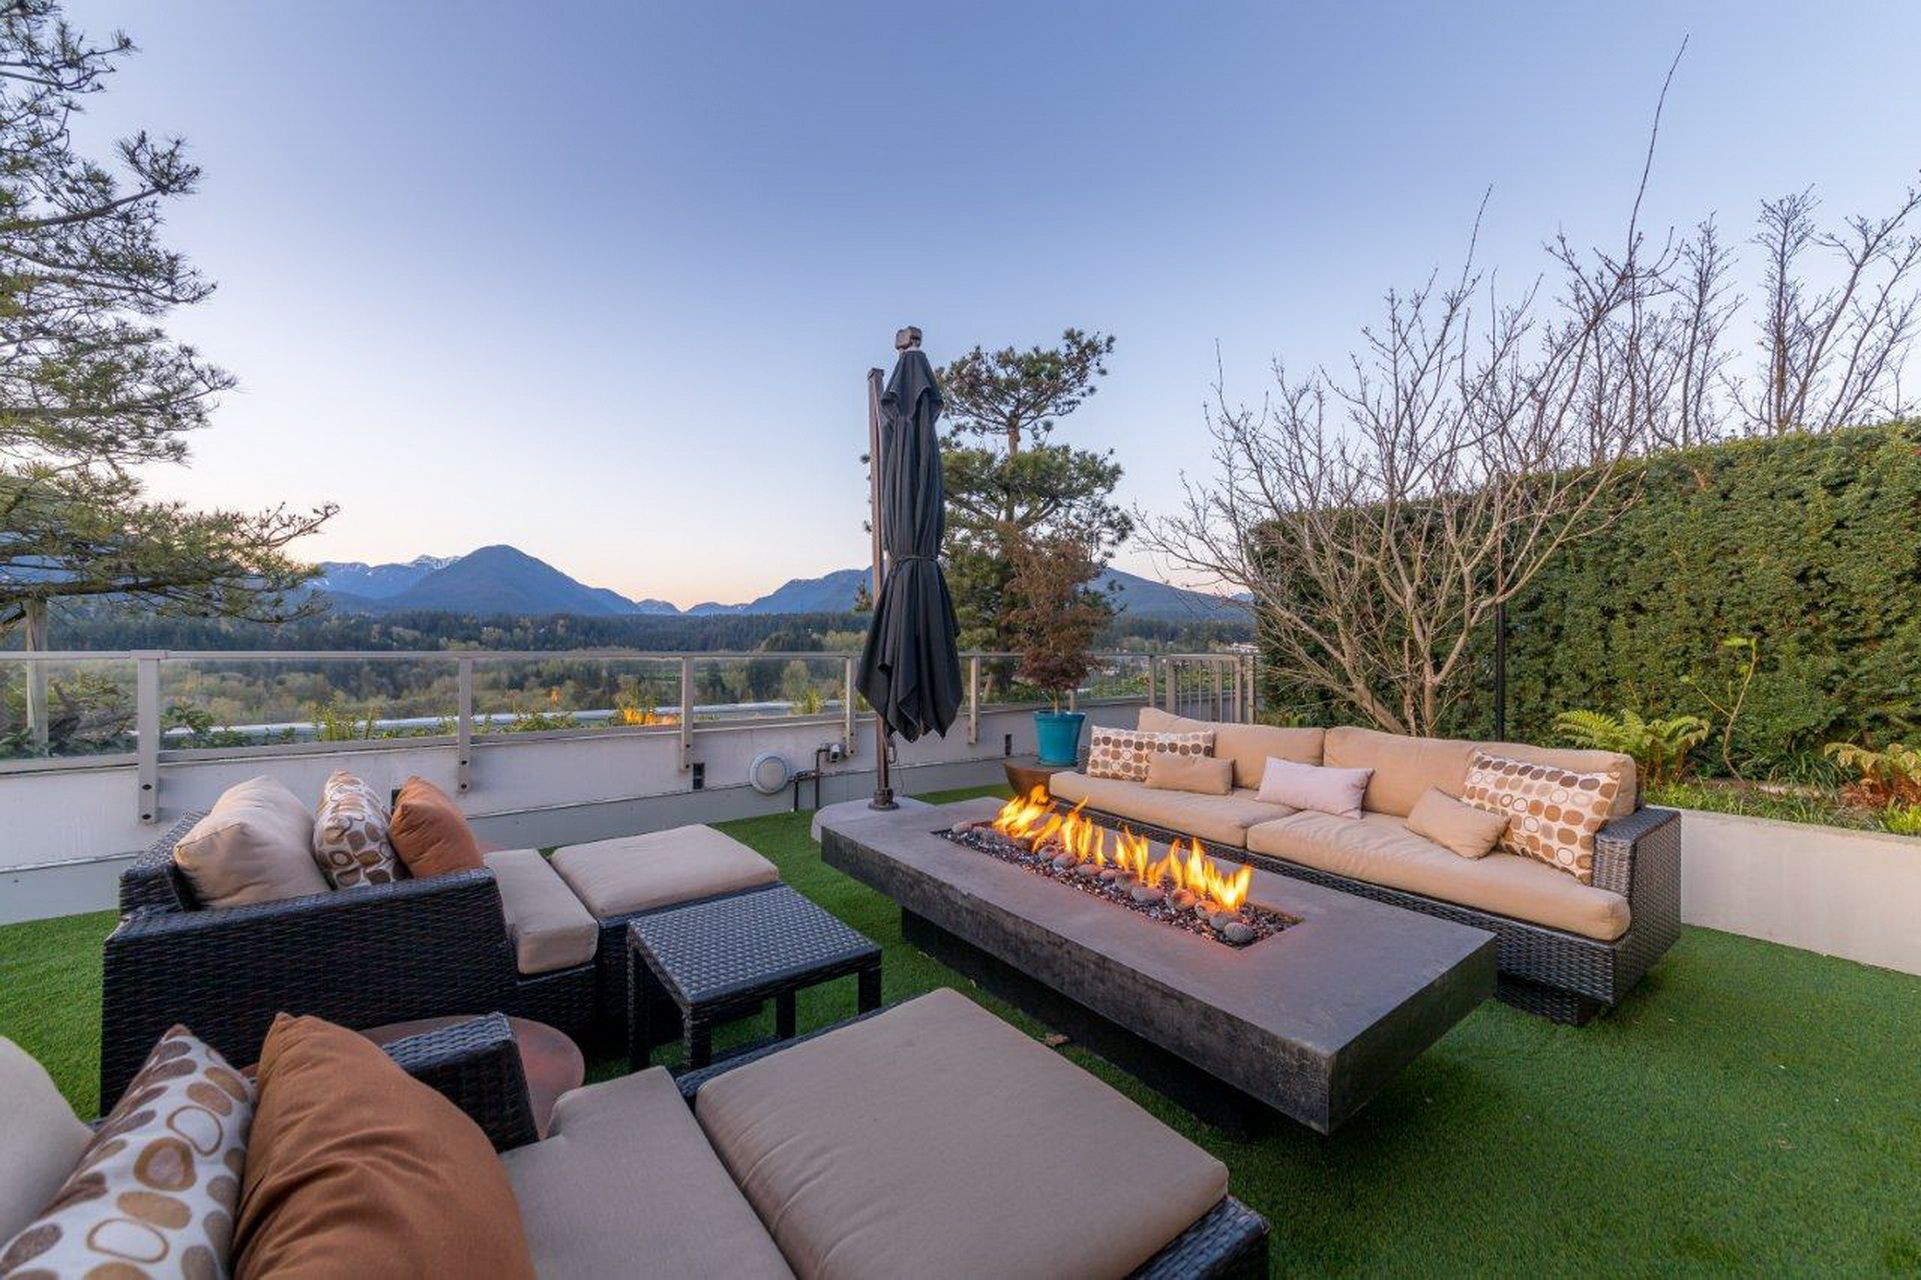 Main Photo: PH2504 1550 FERN STREET in North Vancouver: Lynnmour Condo for sale : MLS®# R2569044